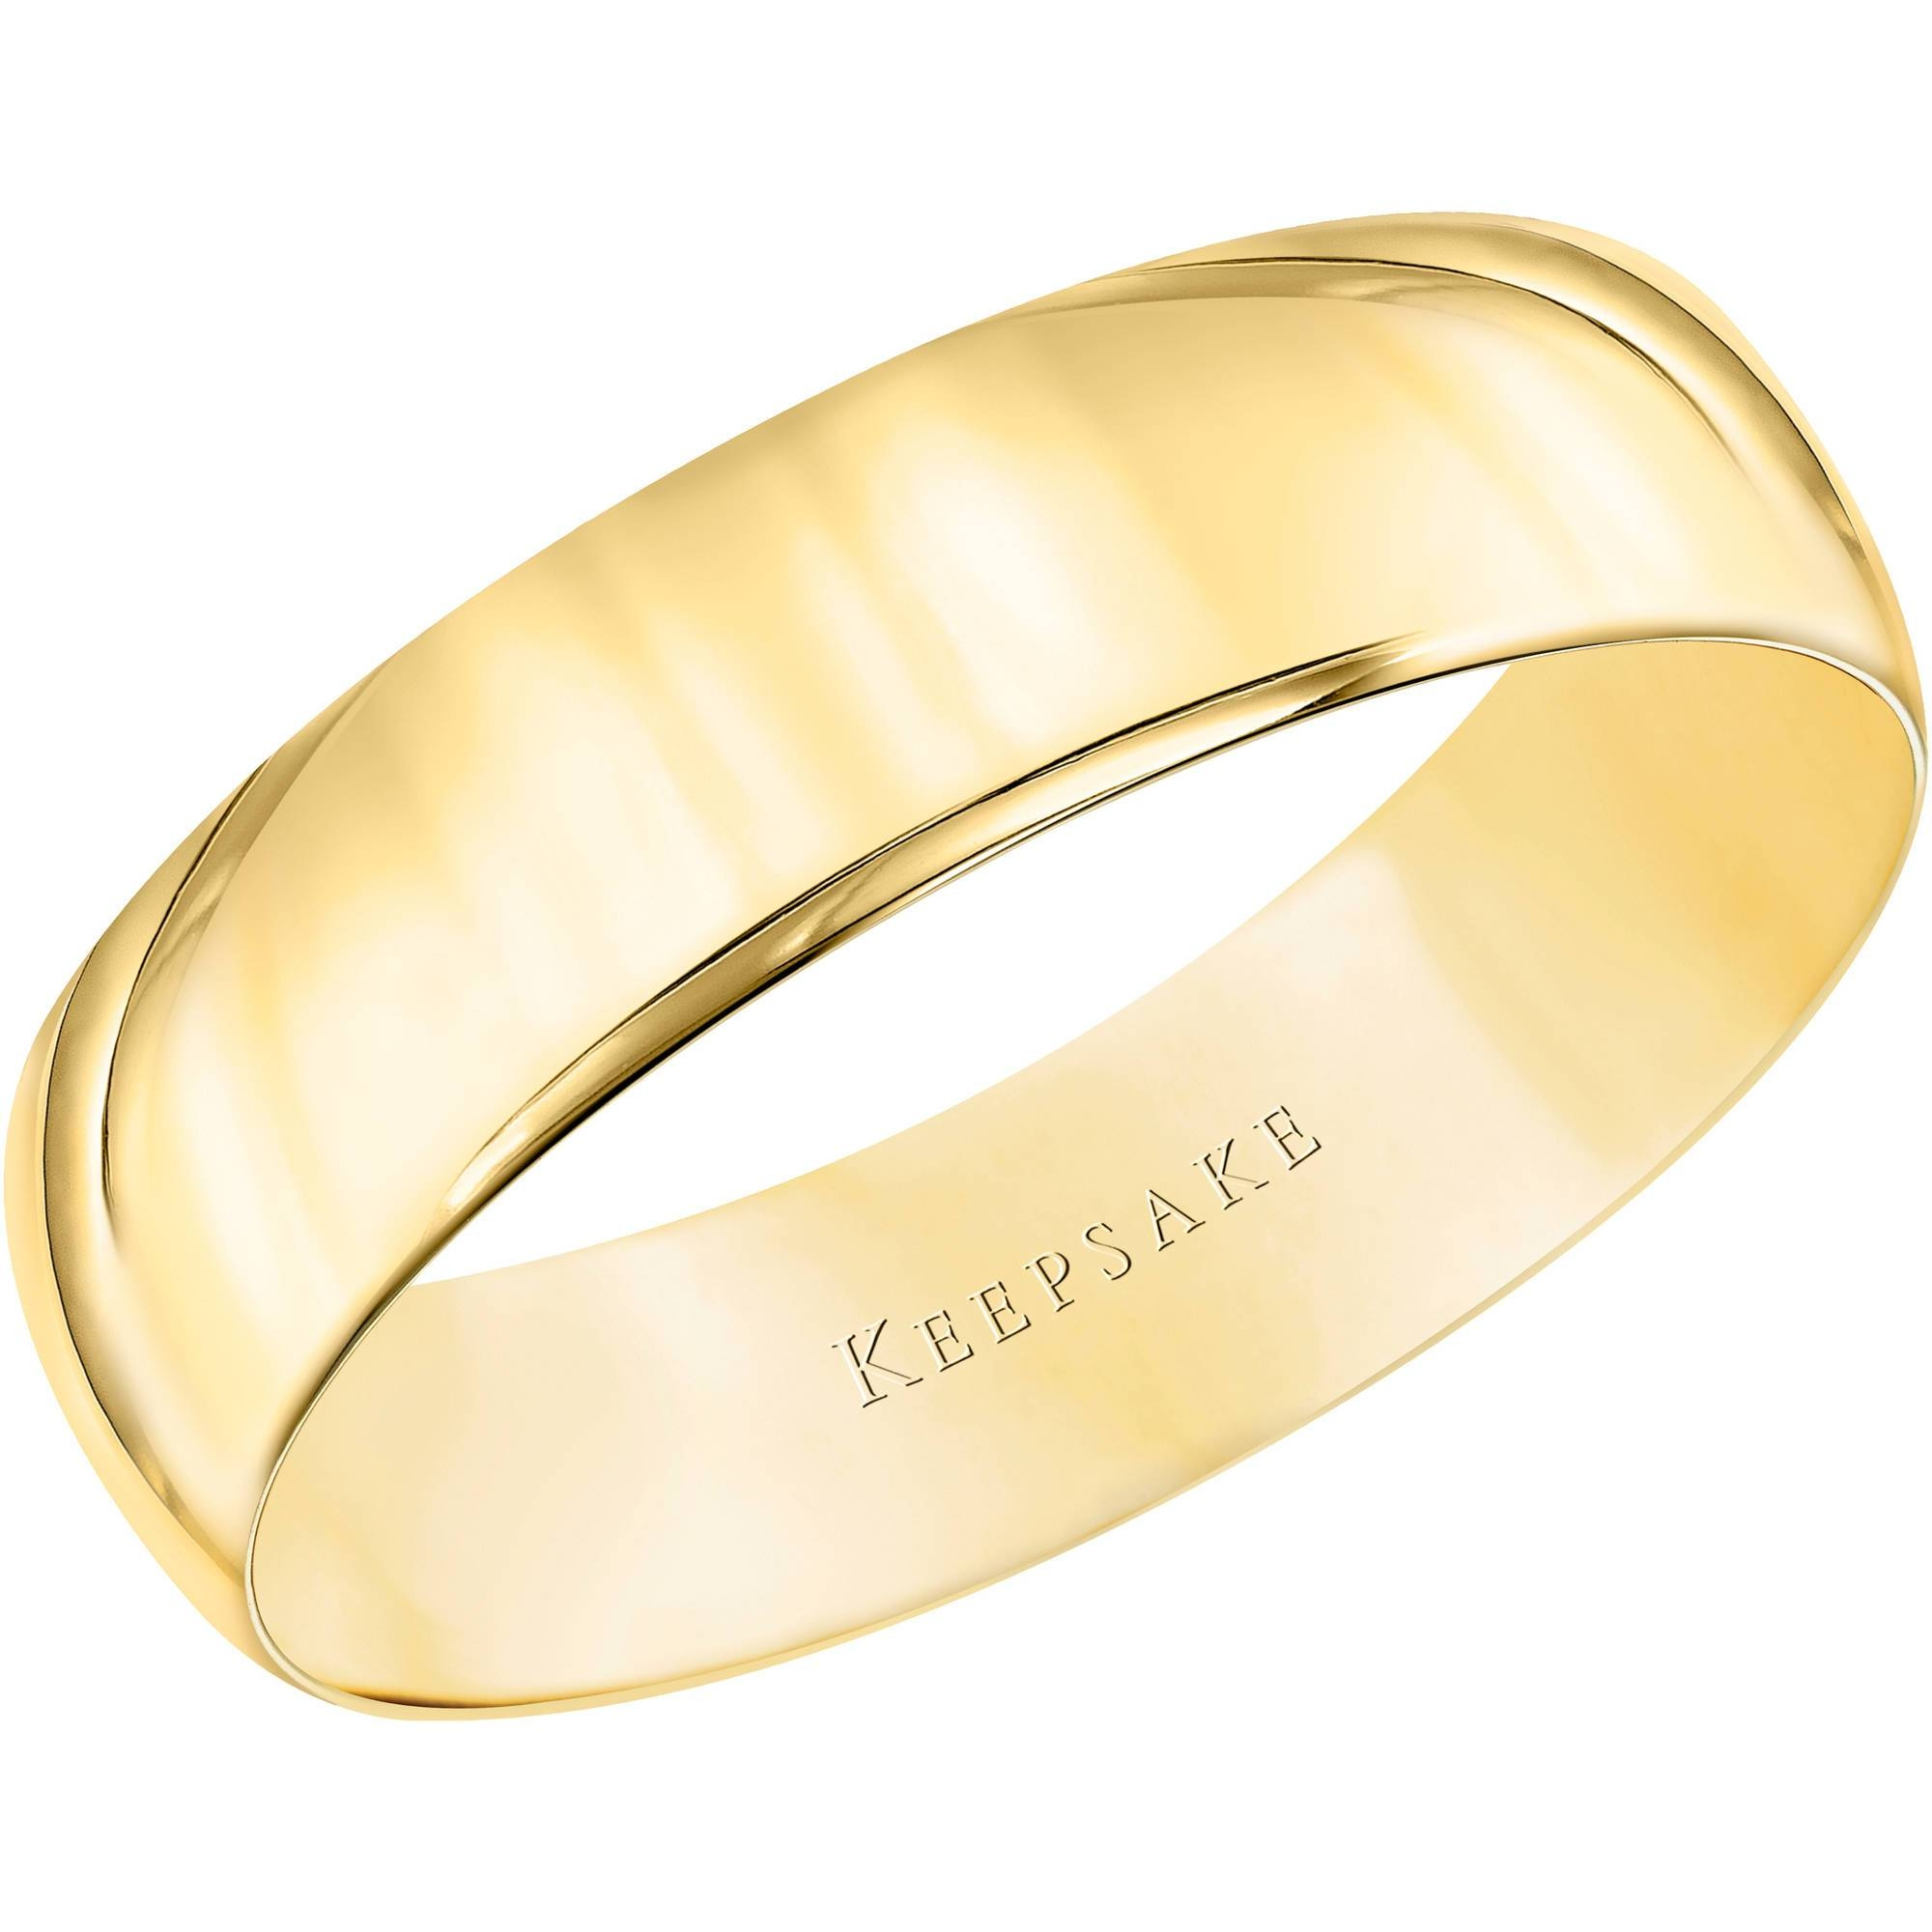 Keepsake 10Kt Yellow Gold Wedding Band With High Polish Finish Throughout White And Yellow Gold Wedding Bands (View 7 of 15)